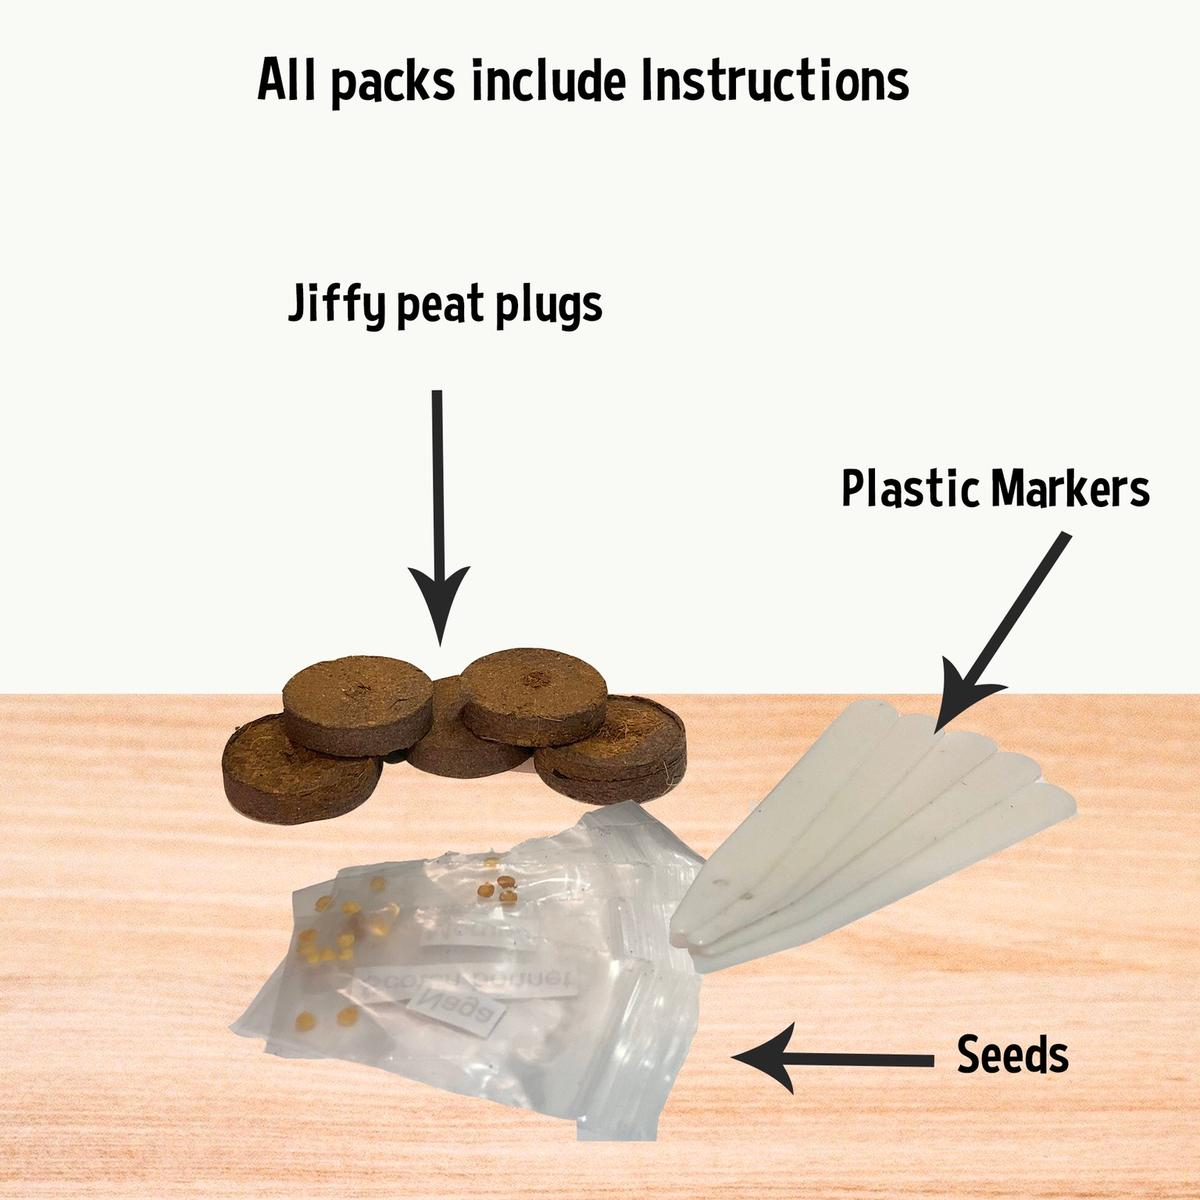 Grow your own fresh veg at home with this allotment starter kit! Everything you need to get started - just add water! Kit includes: Carrot seeds Onions sets Radish seeds Garlic seeds Tomato seeds Lettuce seeds Jiffy peat plugs Markers Instructions